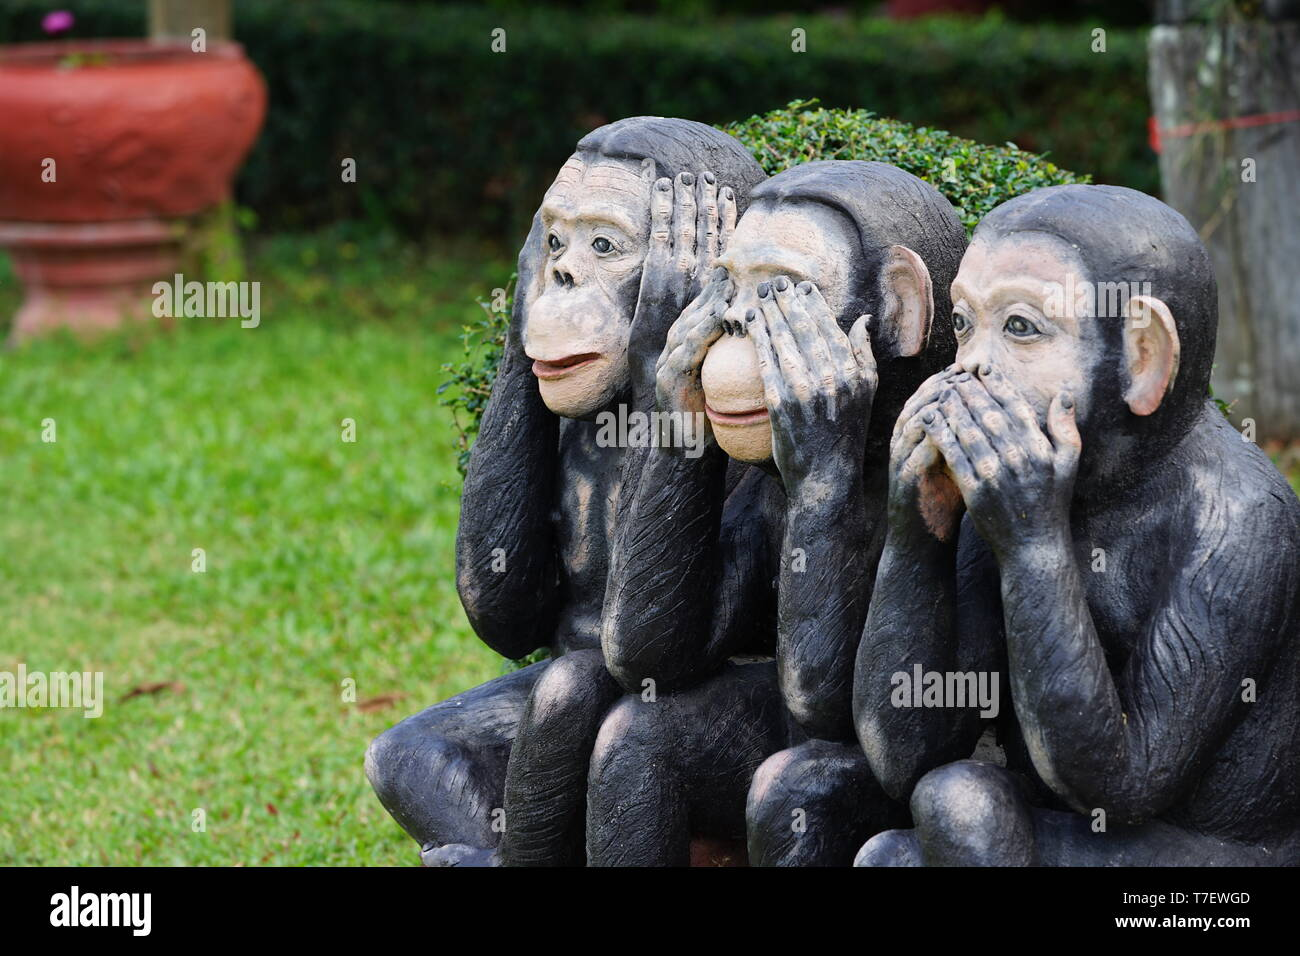 three black monkeys statue siting on the rock in the row; close eyes, close mouth, close ear., Thailand - Stock Image